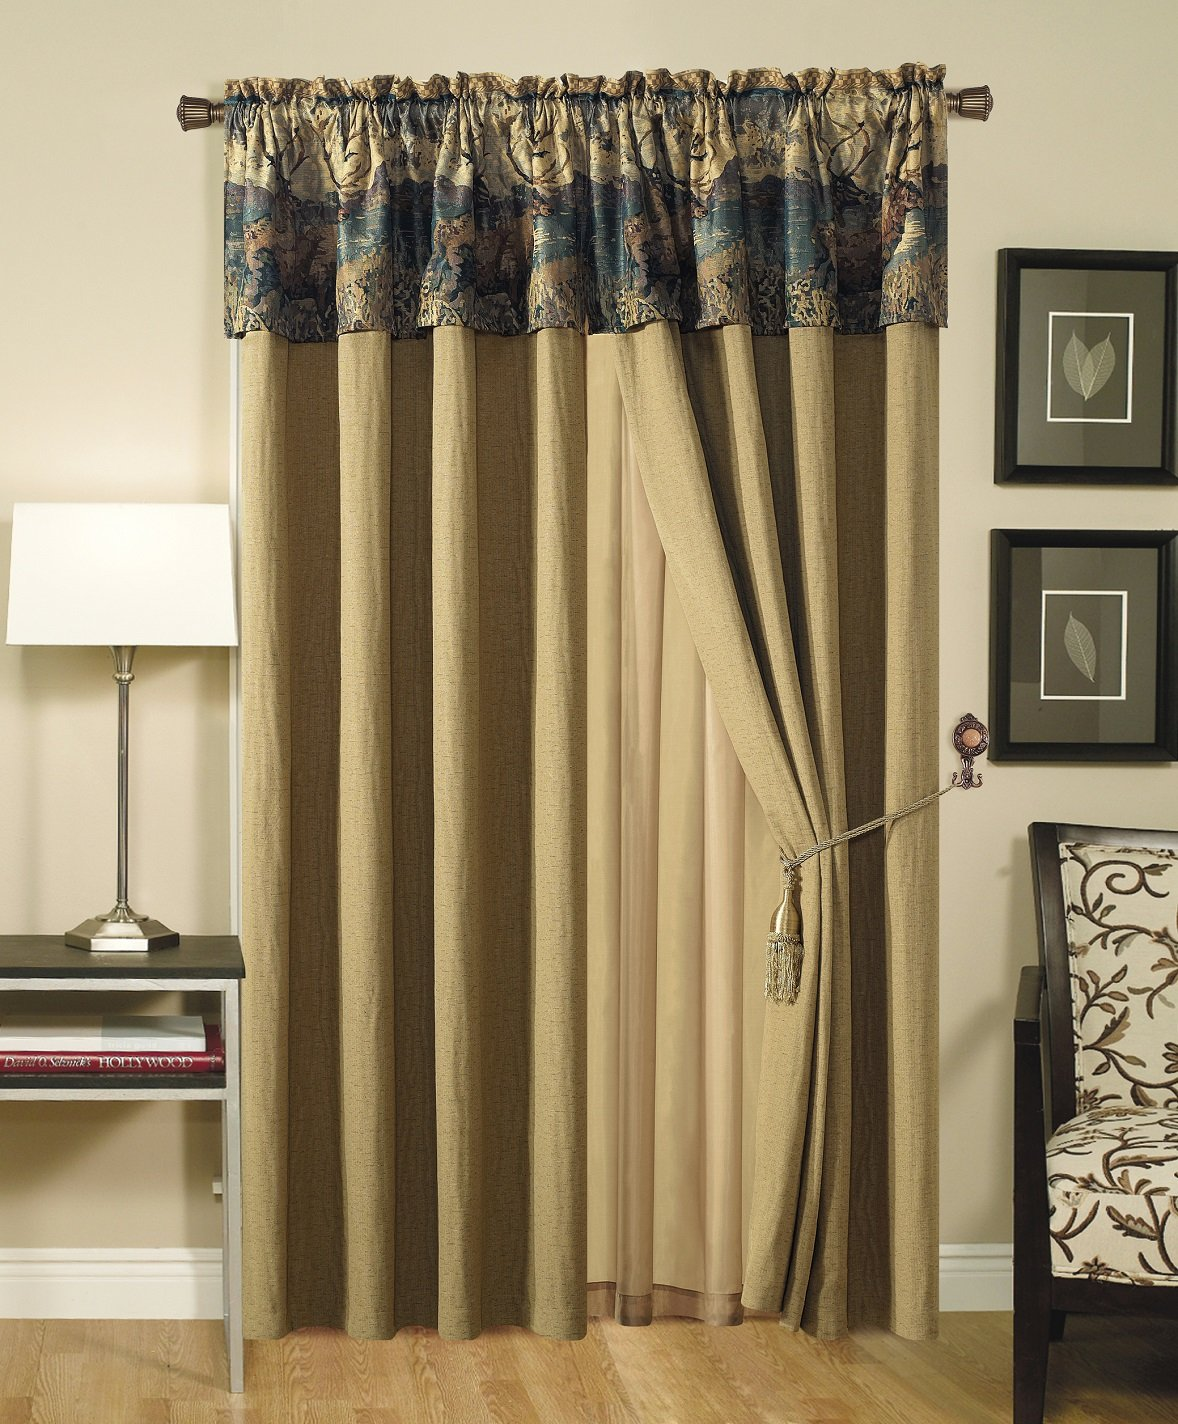 French Country Wild Deer and Elk Drape Set